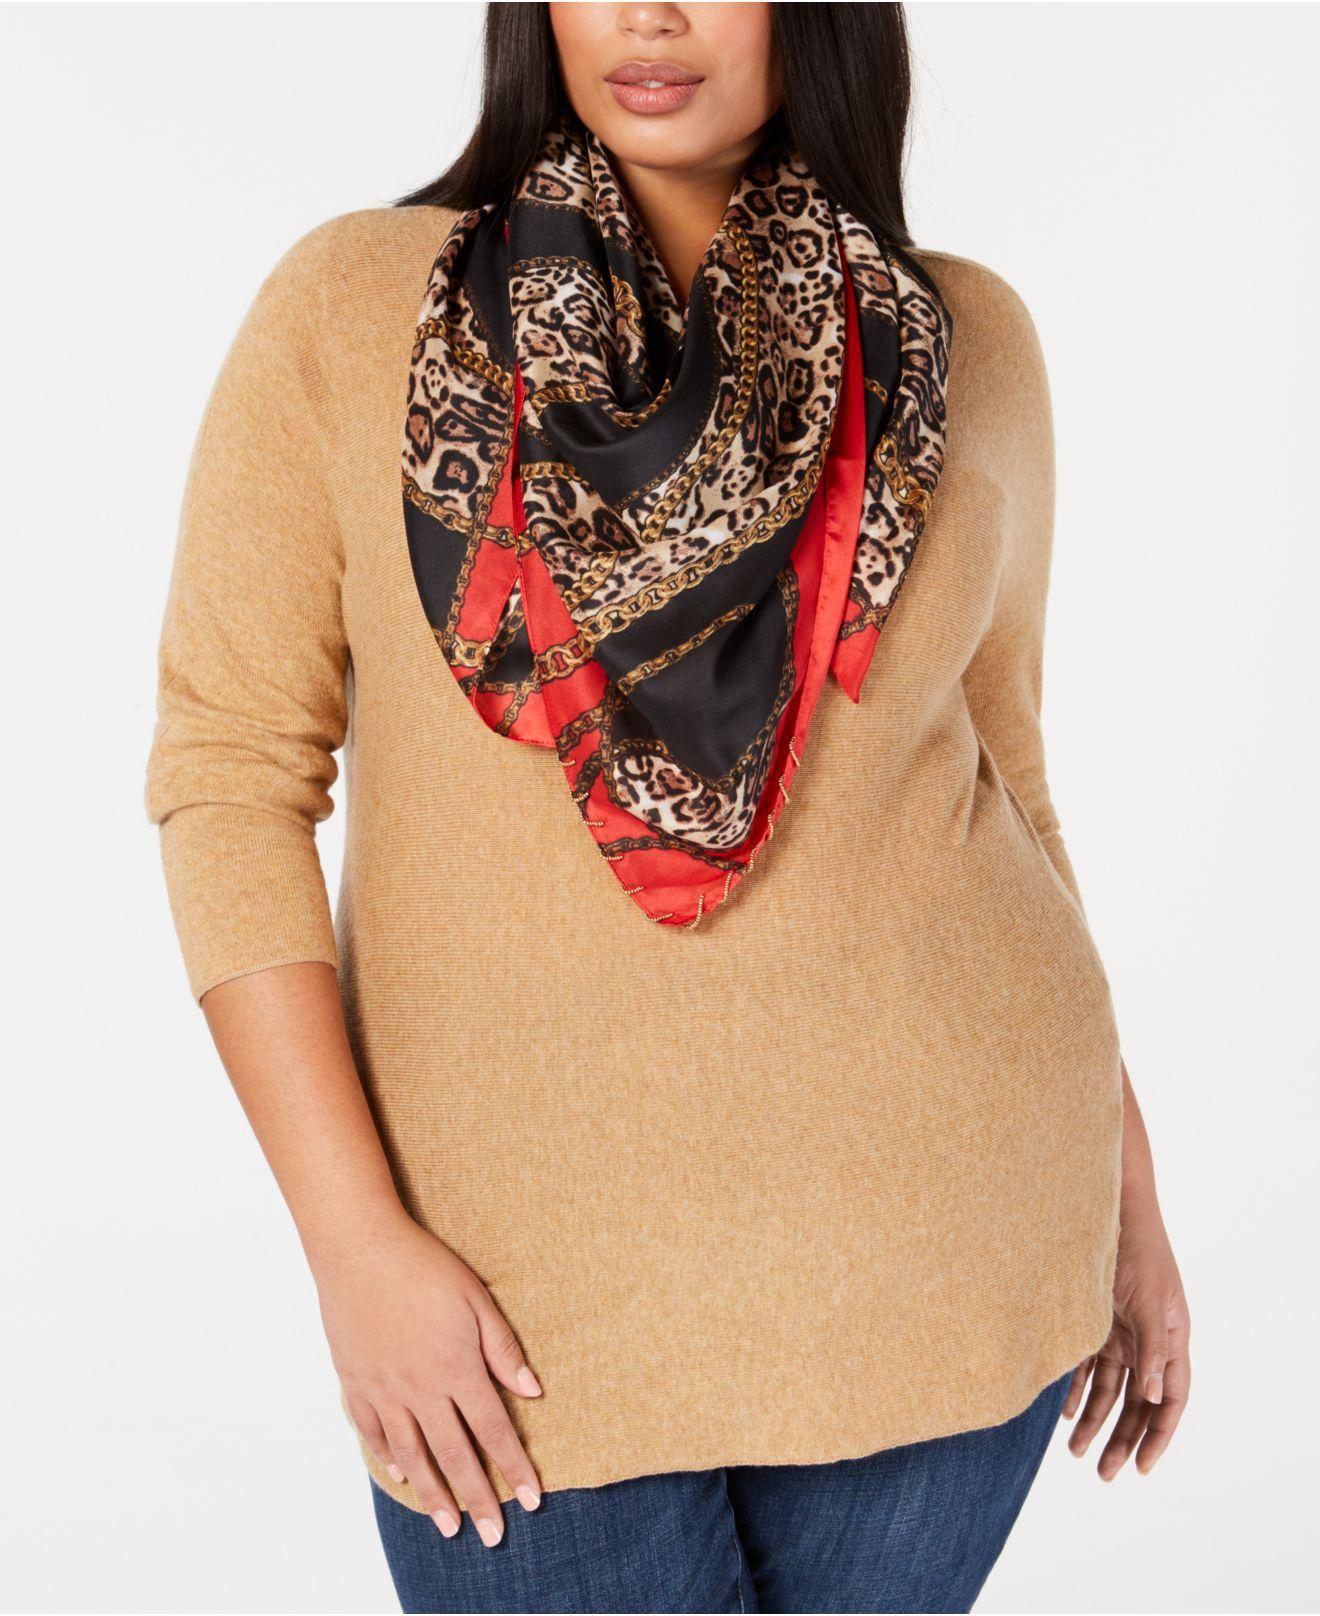 To acquire Infinity leopard scarf macy?s pictures trends